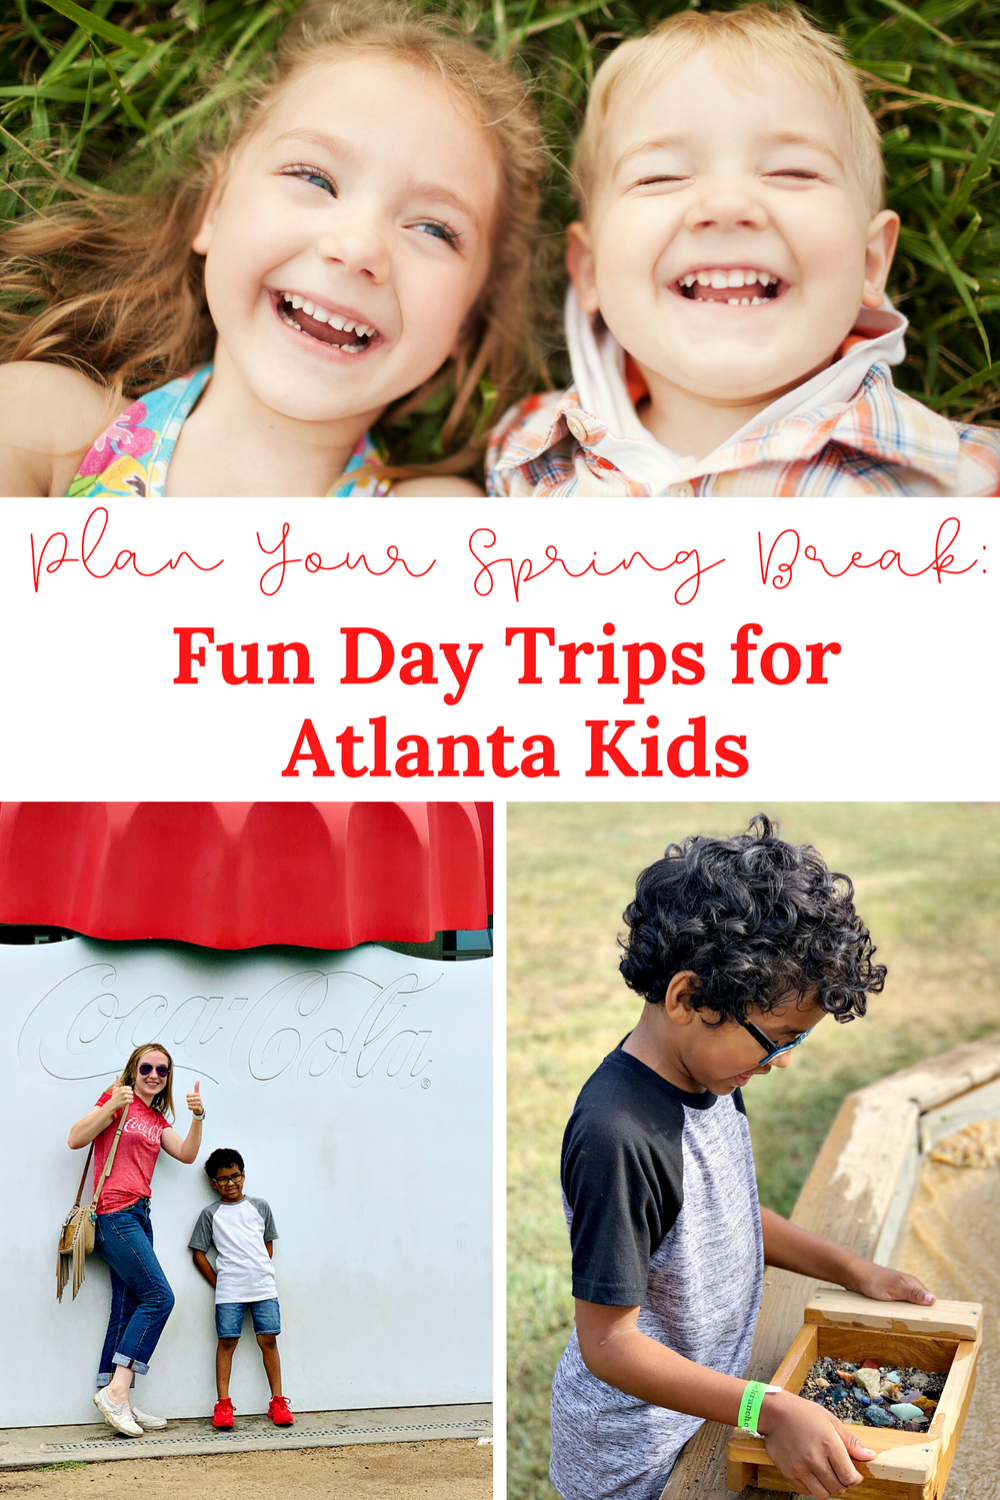 Fun Day Trips for Atlanta Kids